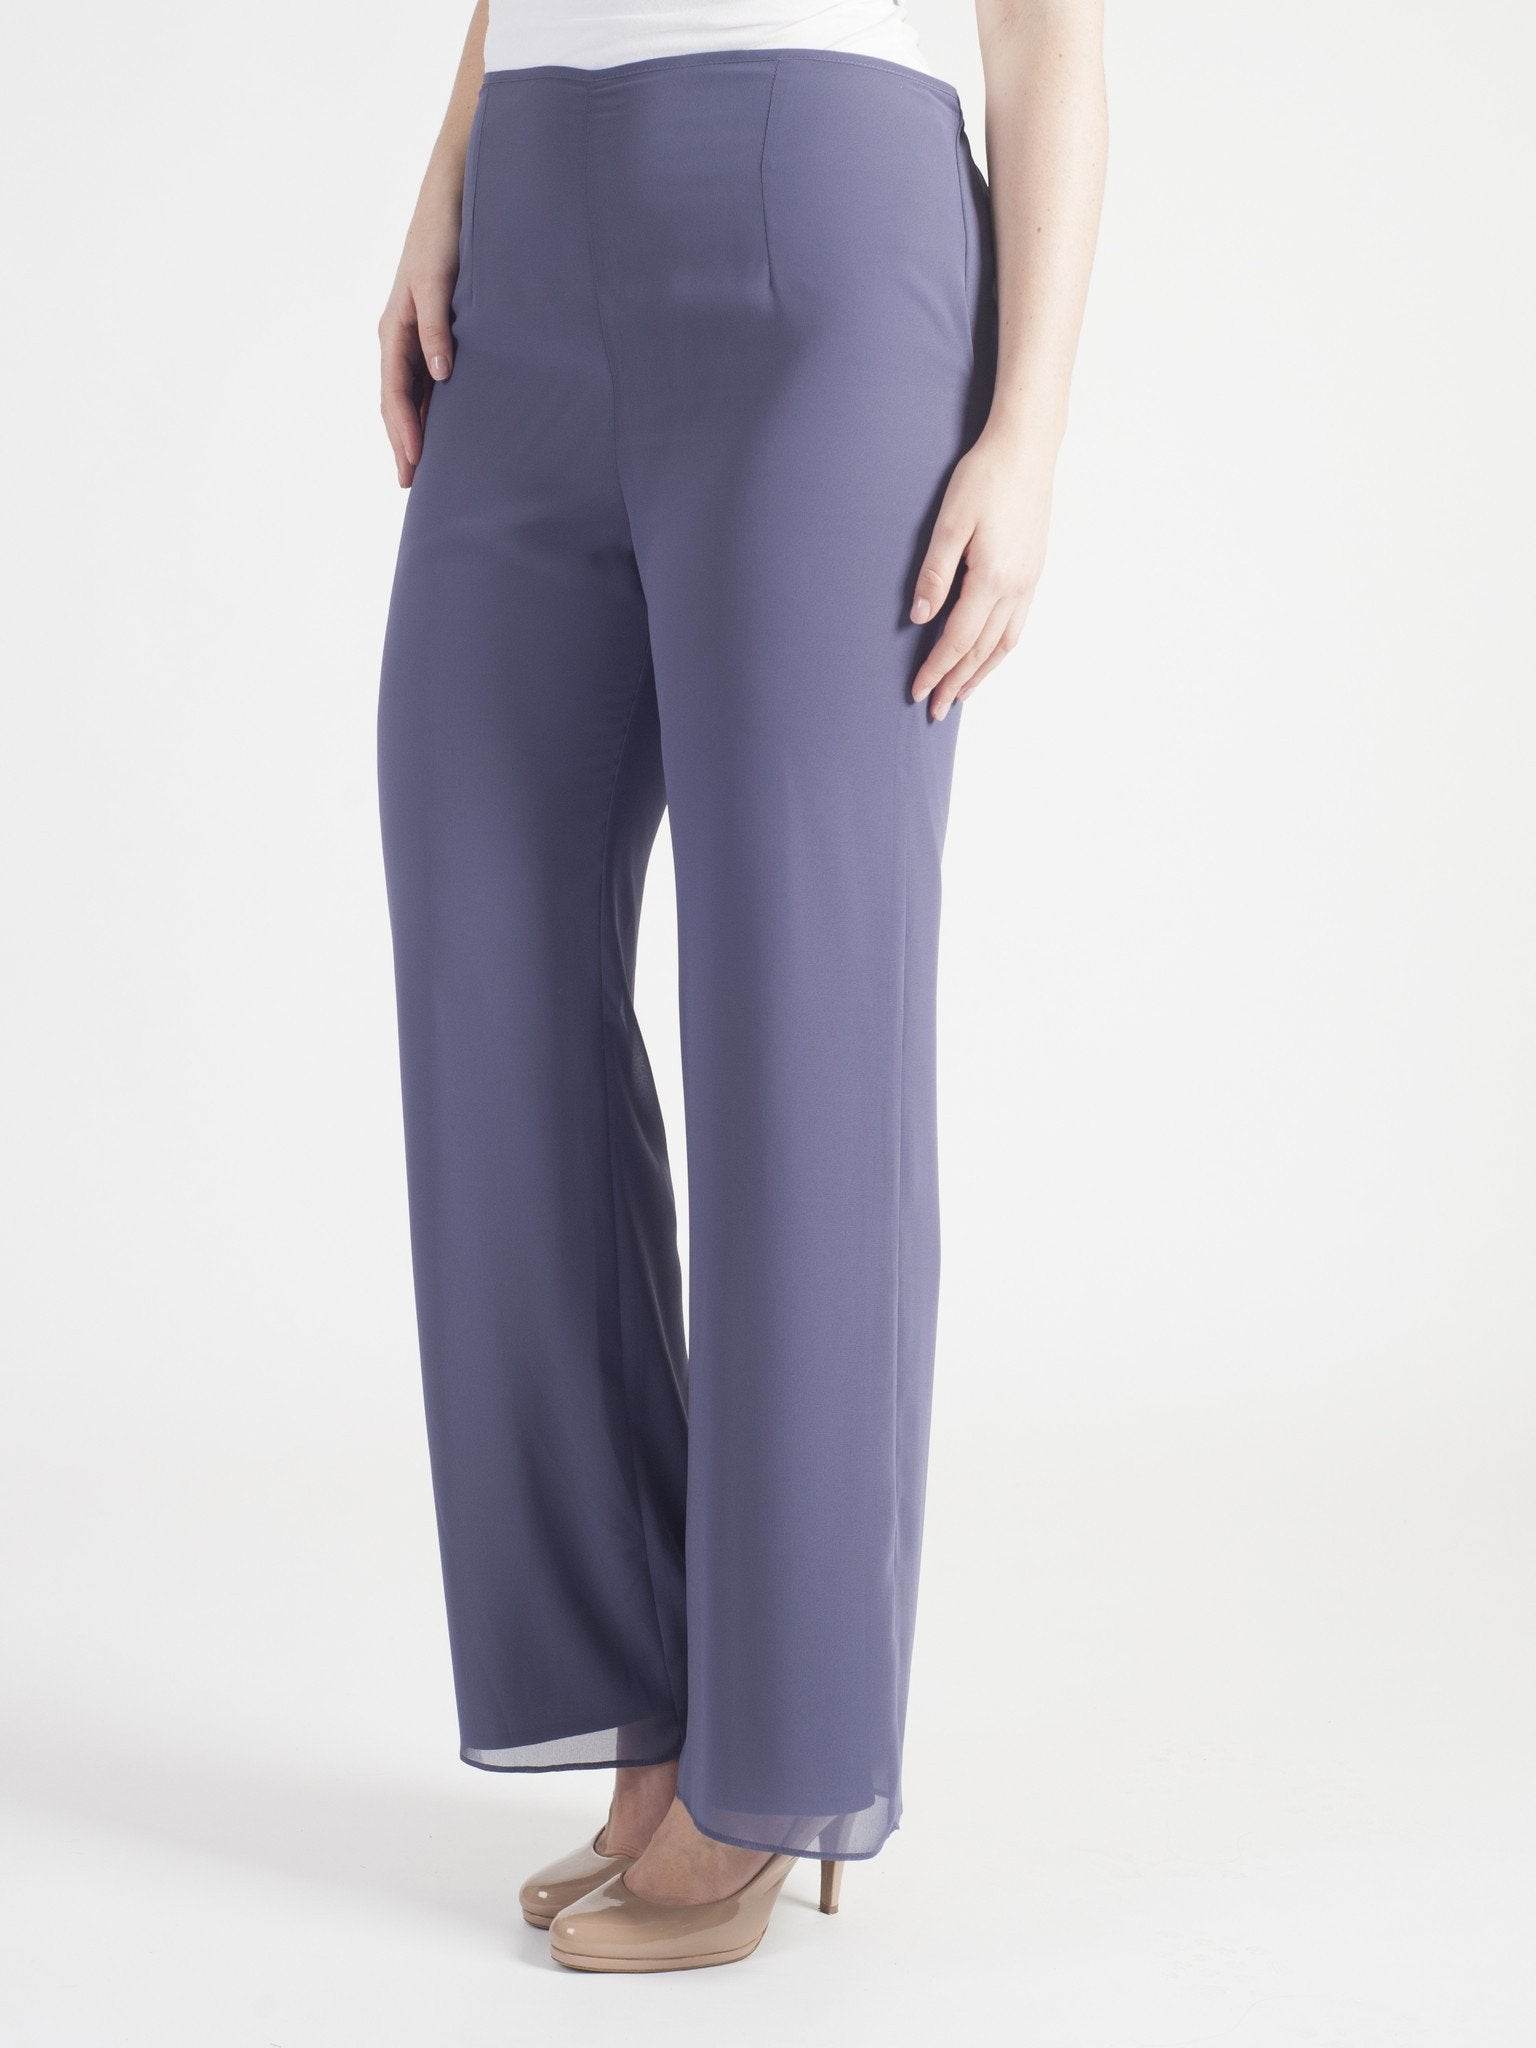 Chesca Direct Lavender Chiffon Trouser